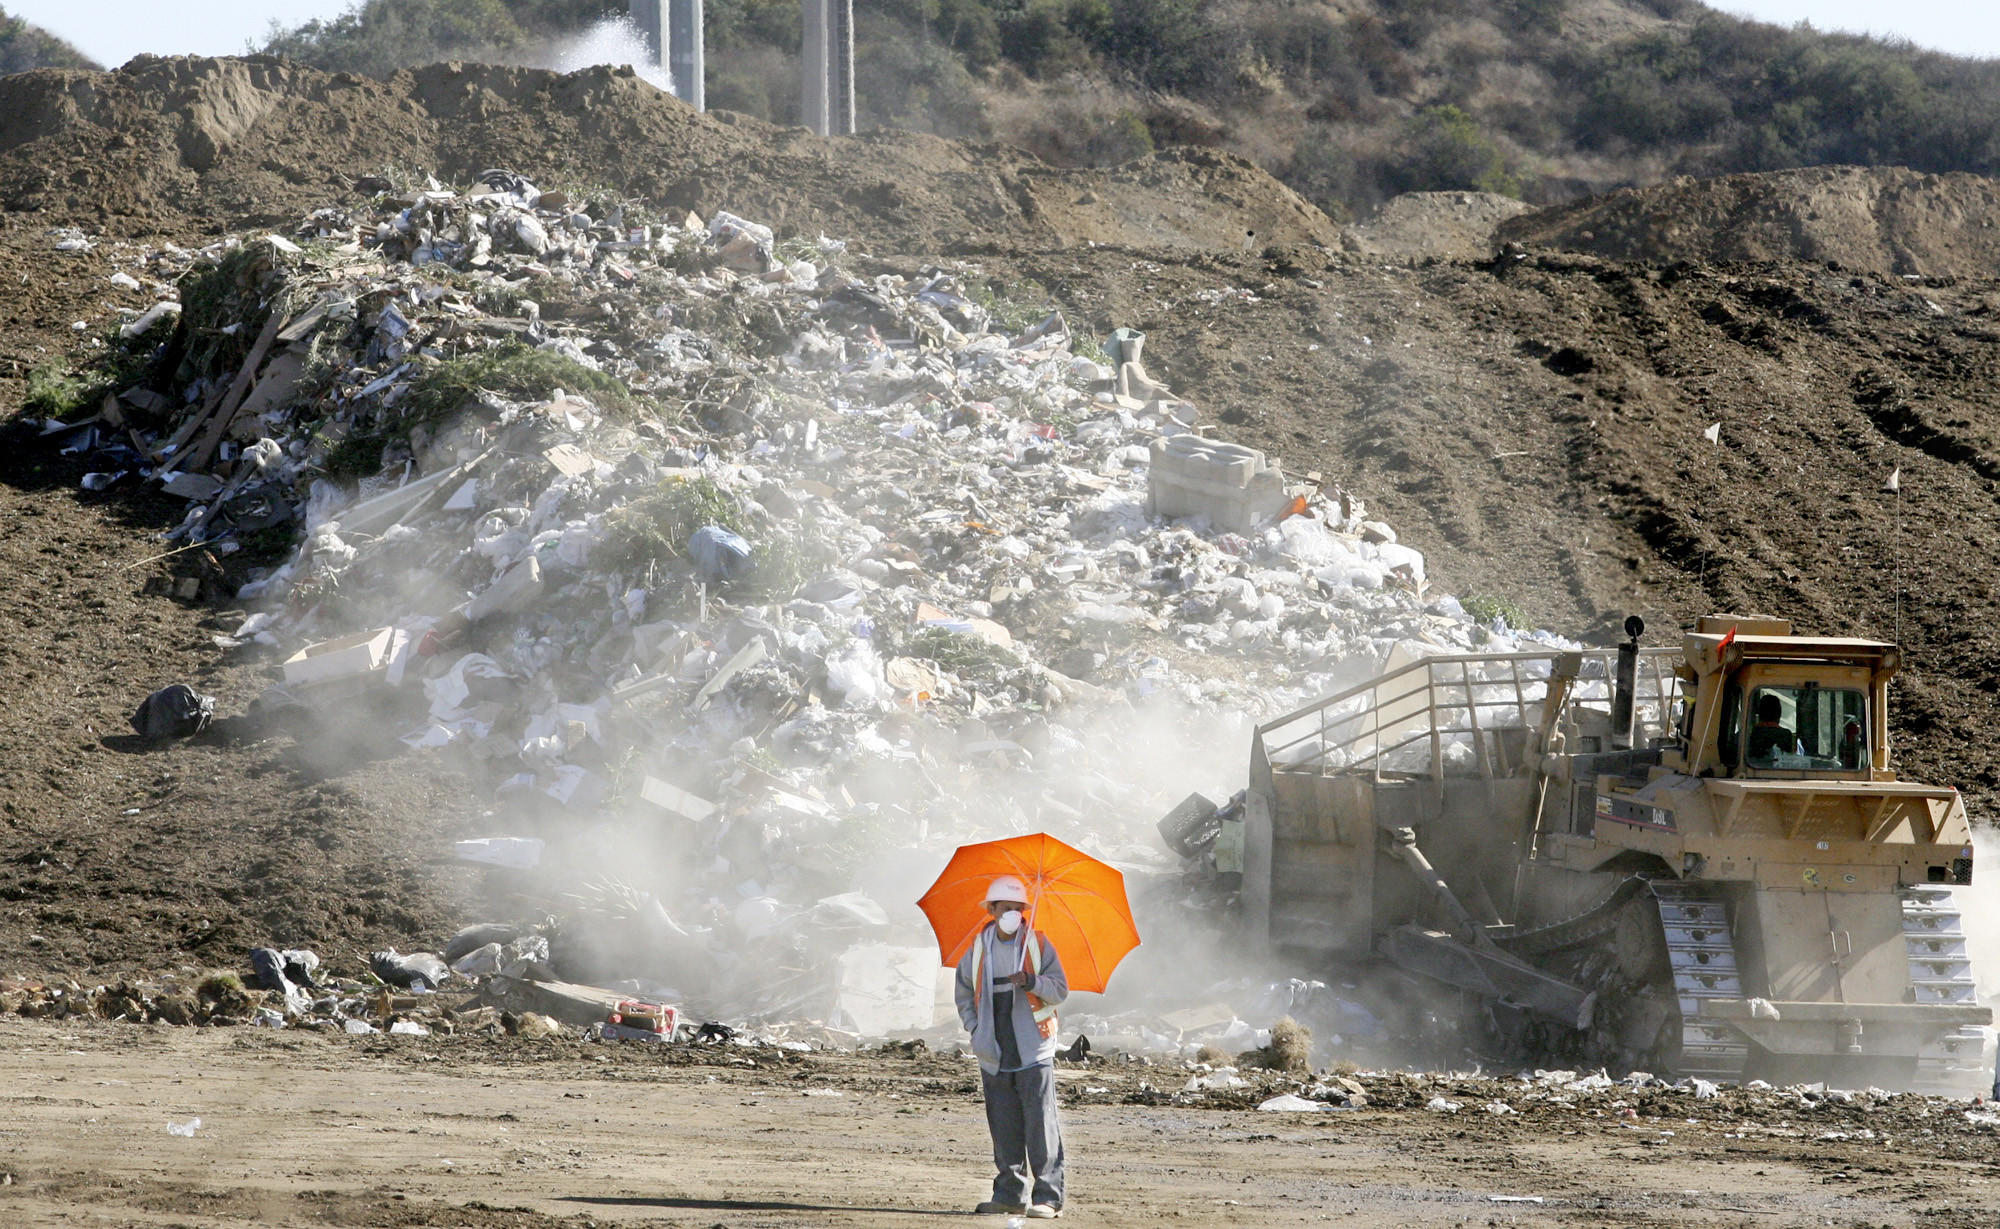 A worker keeps an eye on incoming vehicles while a bulldozer works trash into the Scholl Canyon landfill on Saturday, October 25, 2008.